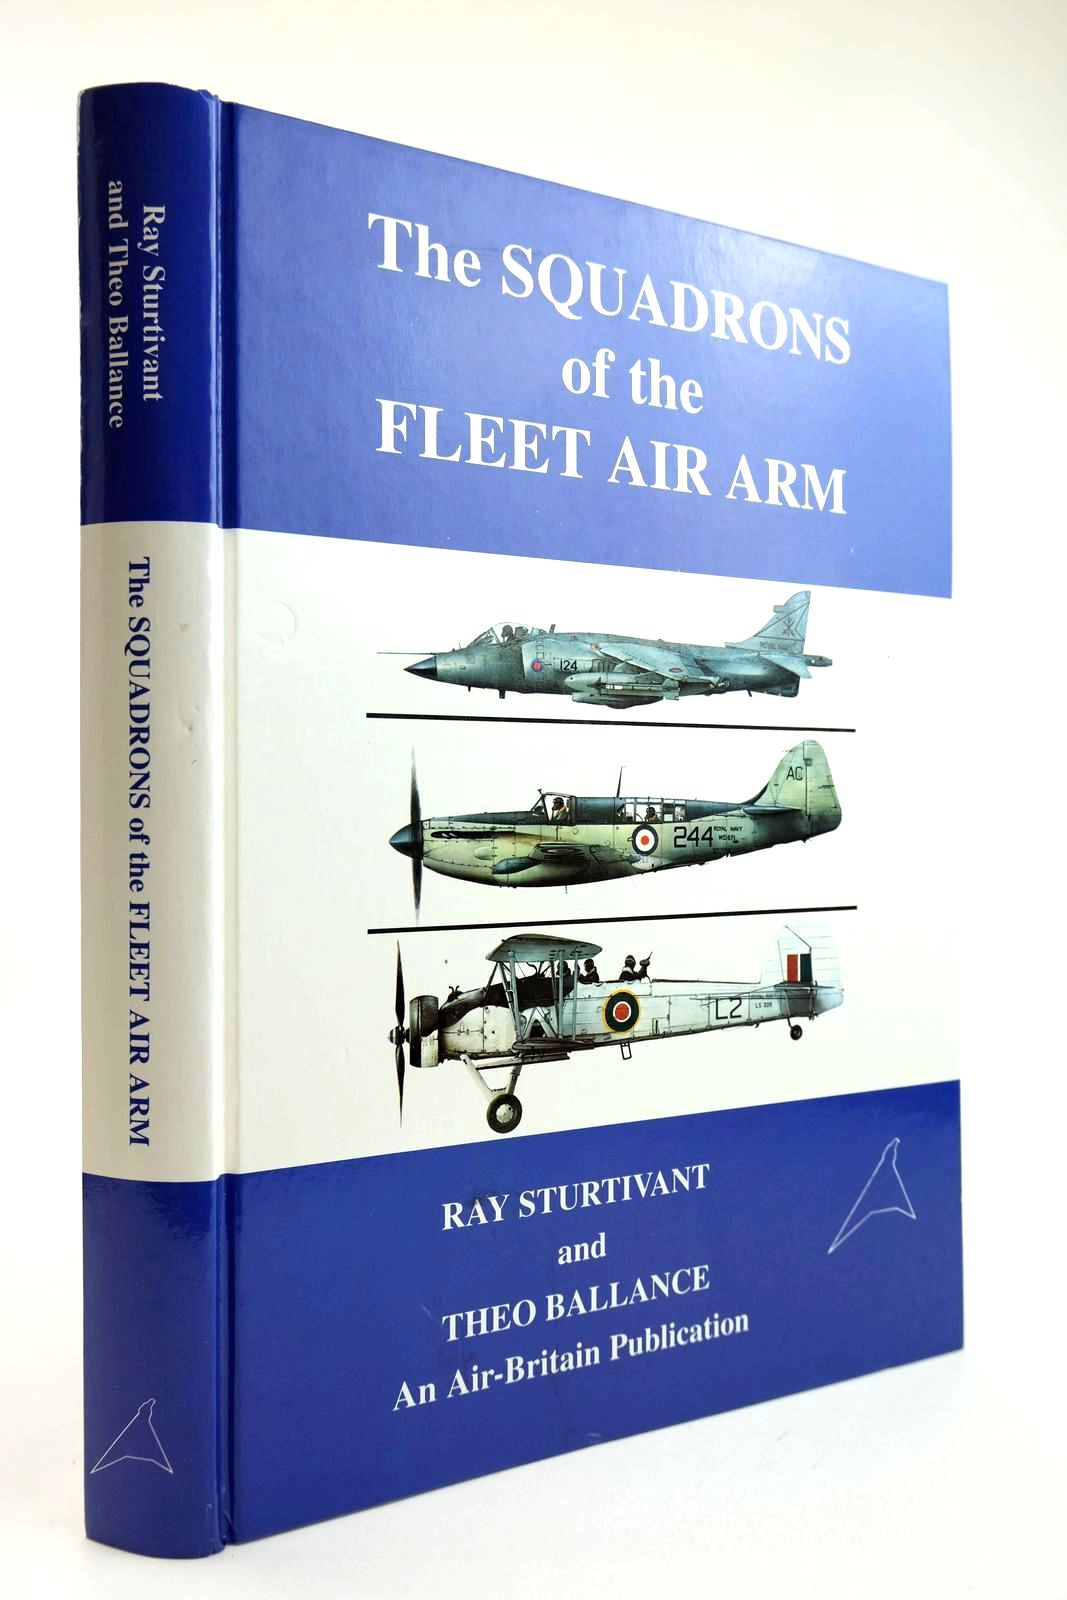 Photo of THE SQUADRONS OF THE FLEET AIR ARM written by Sturtivant, Ray<br />Ballance, Theo published by Air-Britain (Historians) Ltd. (STOCK CODE: 2132189)  for sale by Stella & Rose's Books